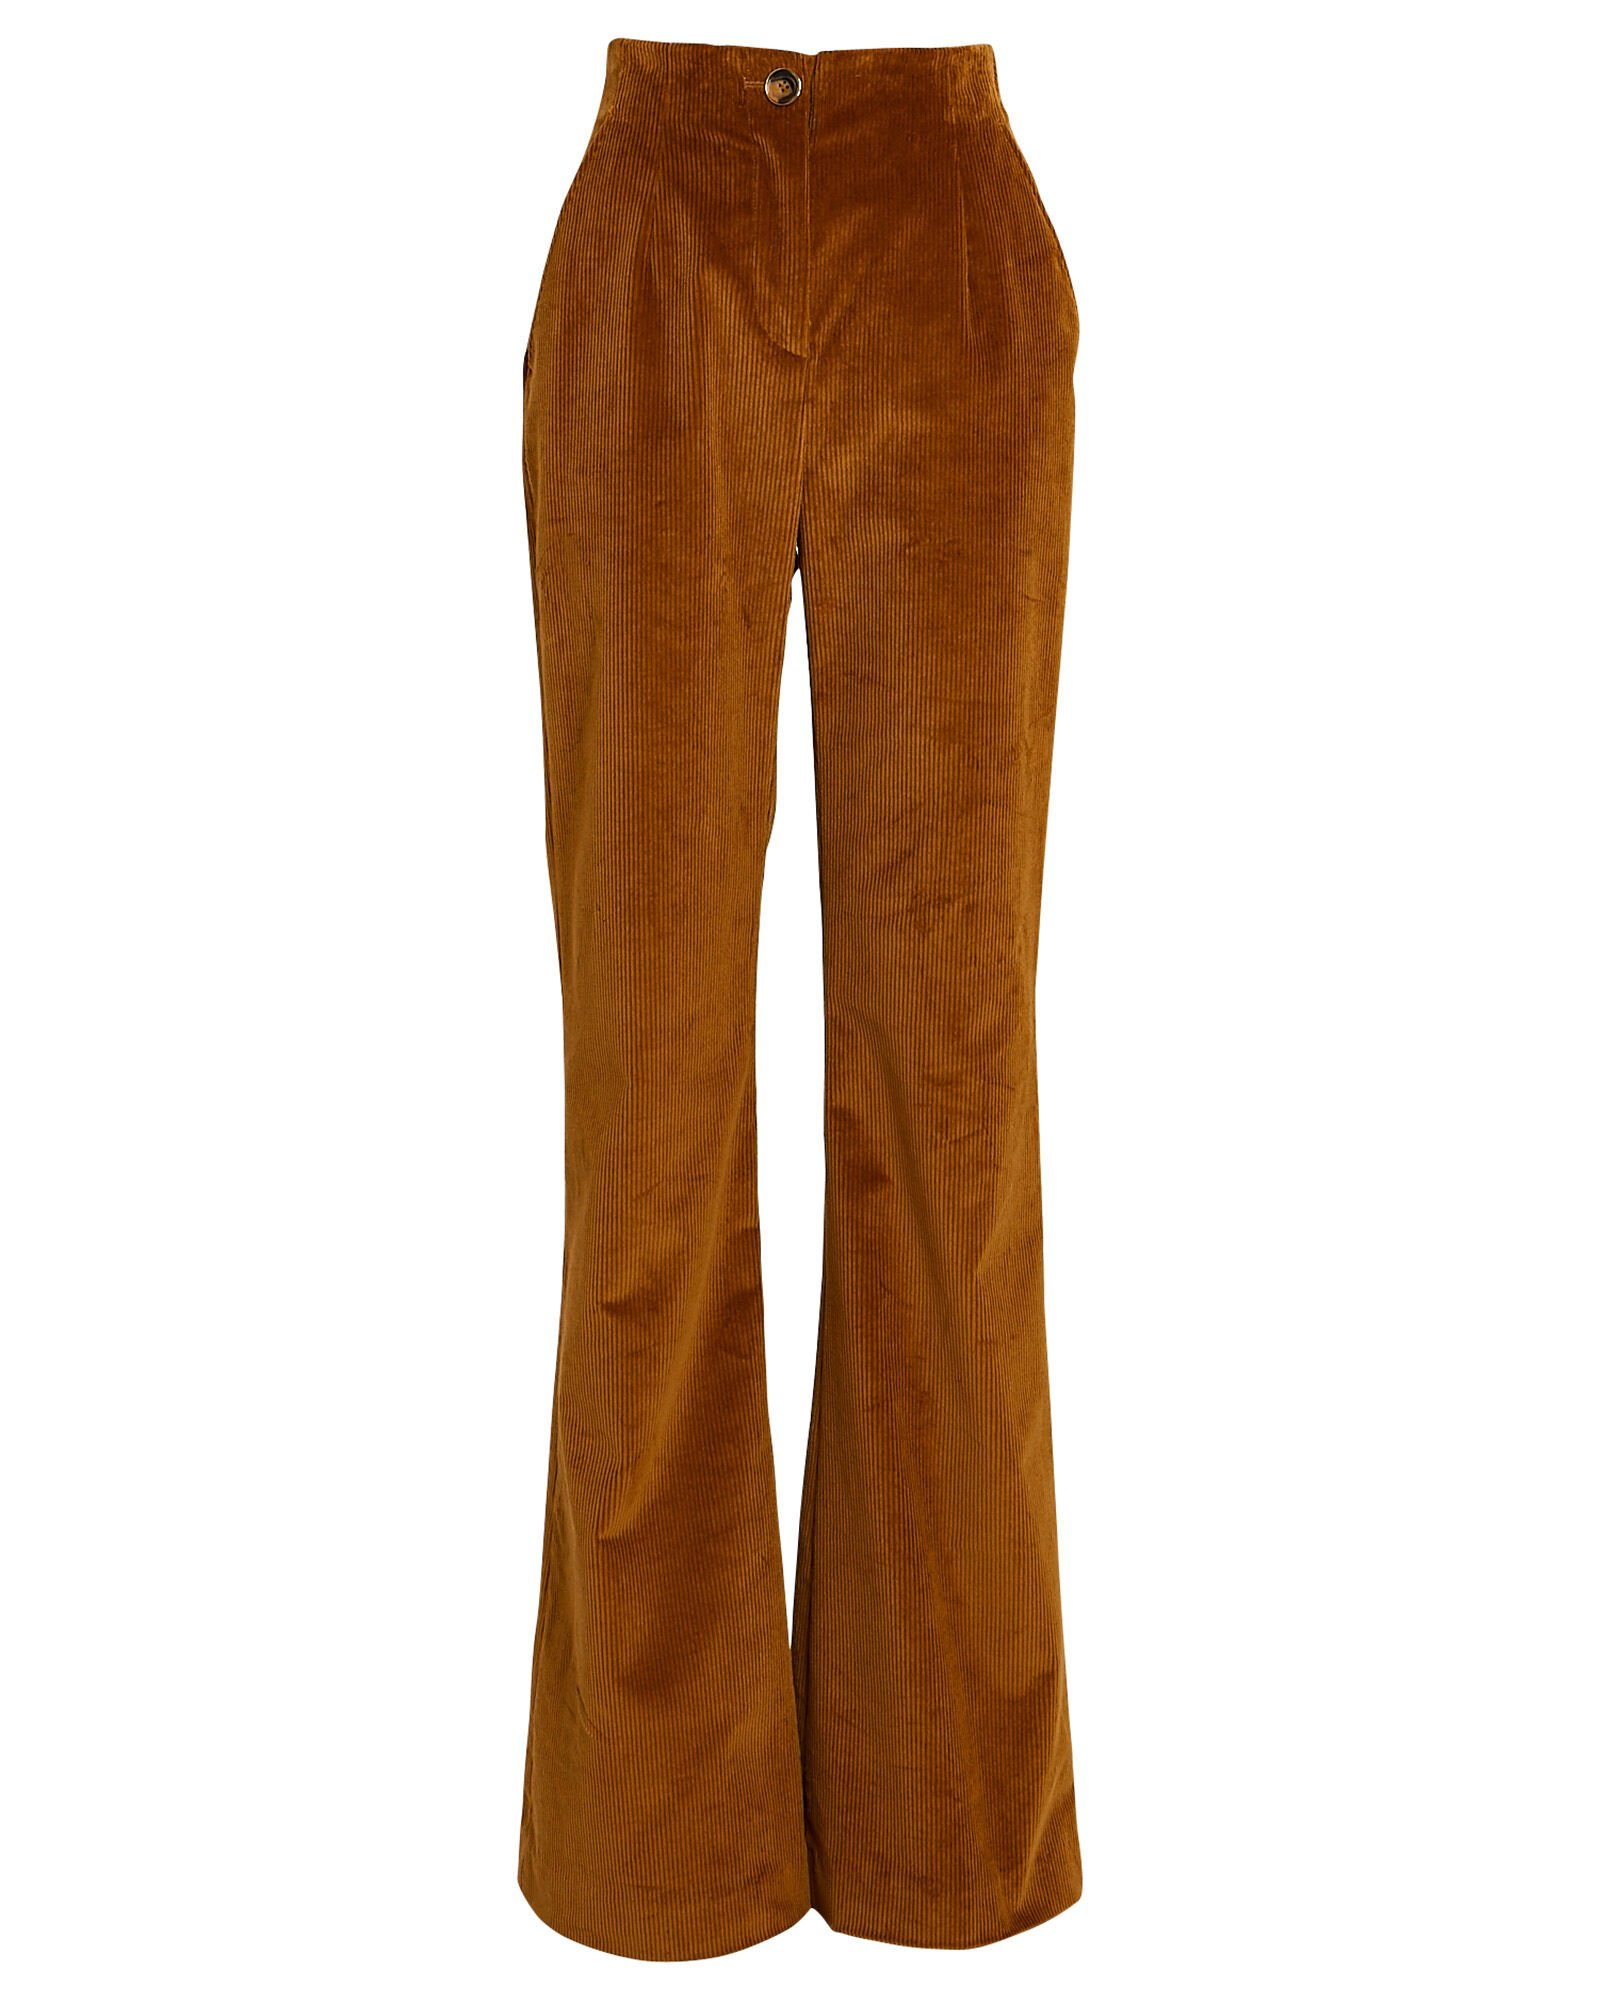 Basima Flared Corduroy Pants, YELLOW, hi-res